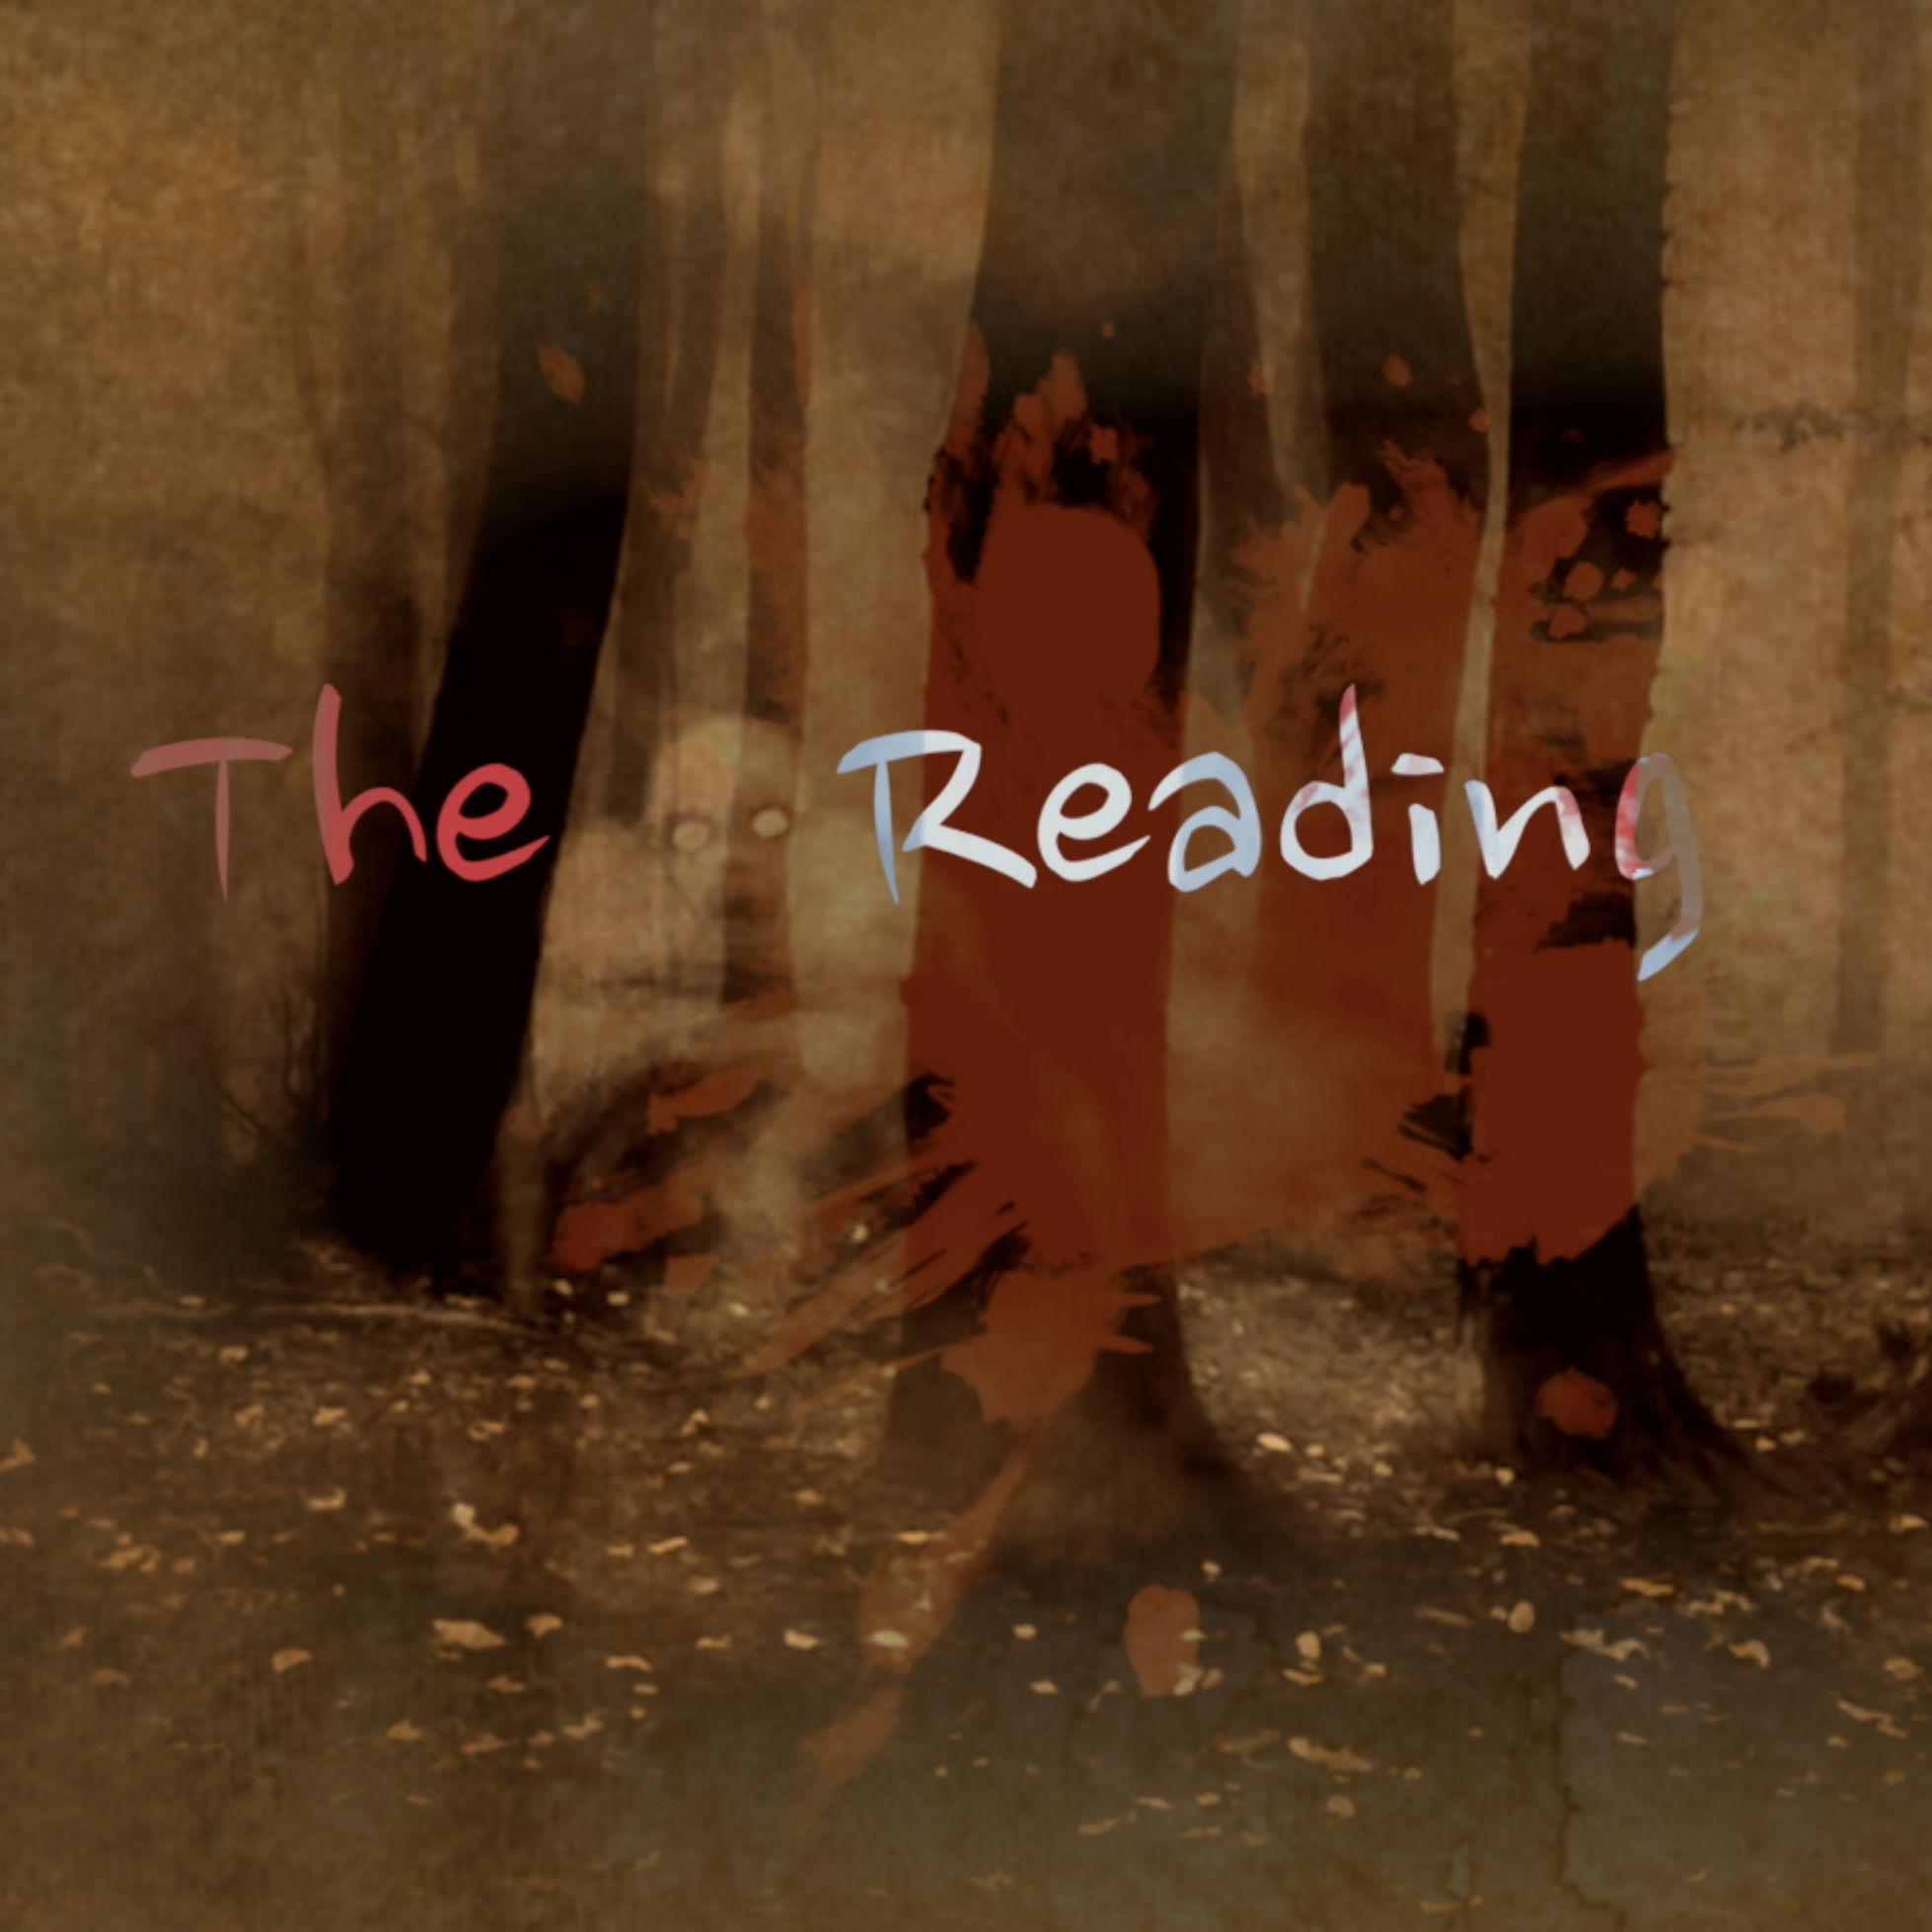 The Reading